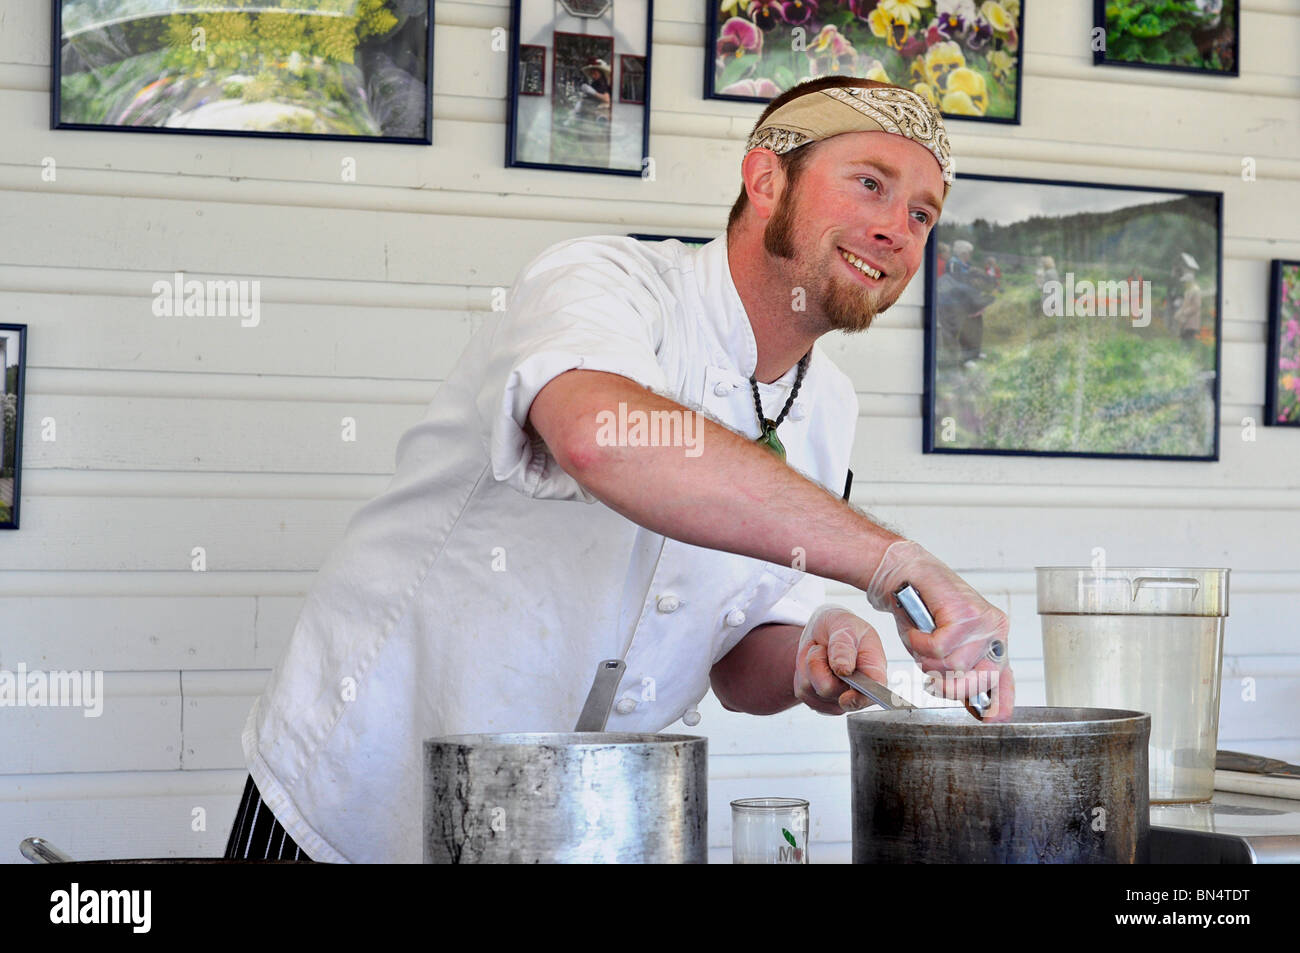 Young male Chef cuisinier, Photo Stock